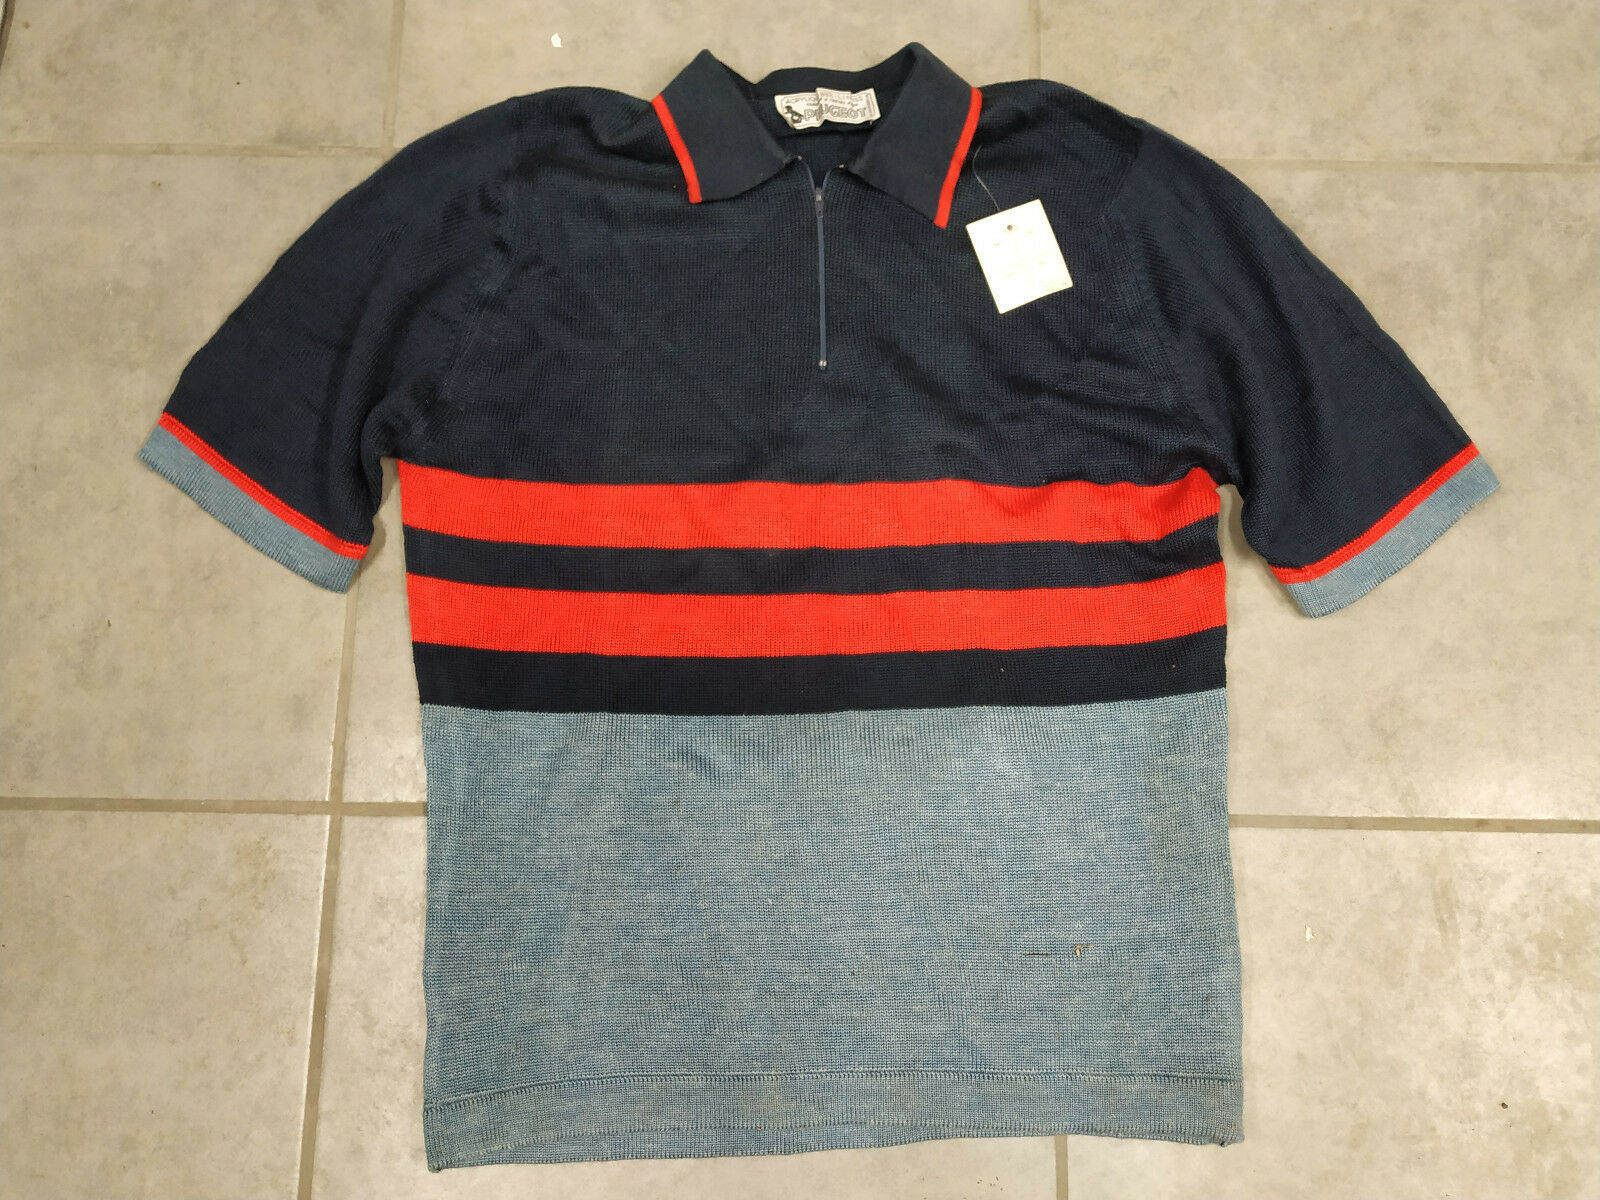 N.O.S Maillot hiver PEUGEOT CYCLES velo old bicicletta bici epoca cycliste